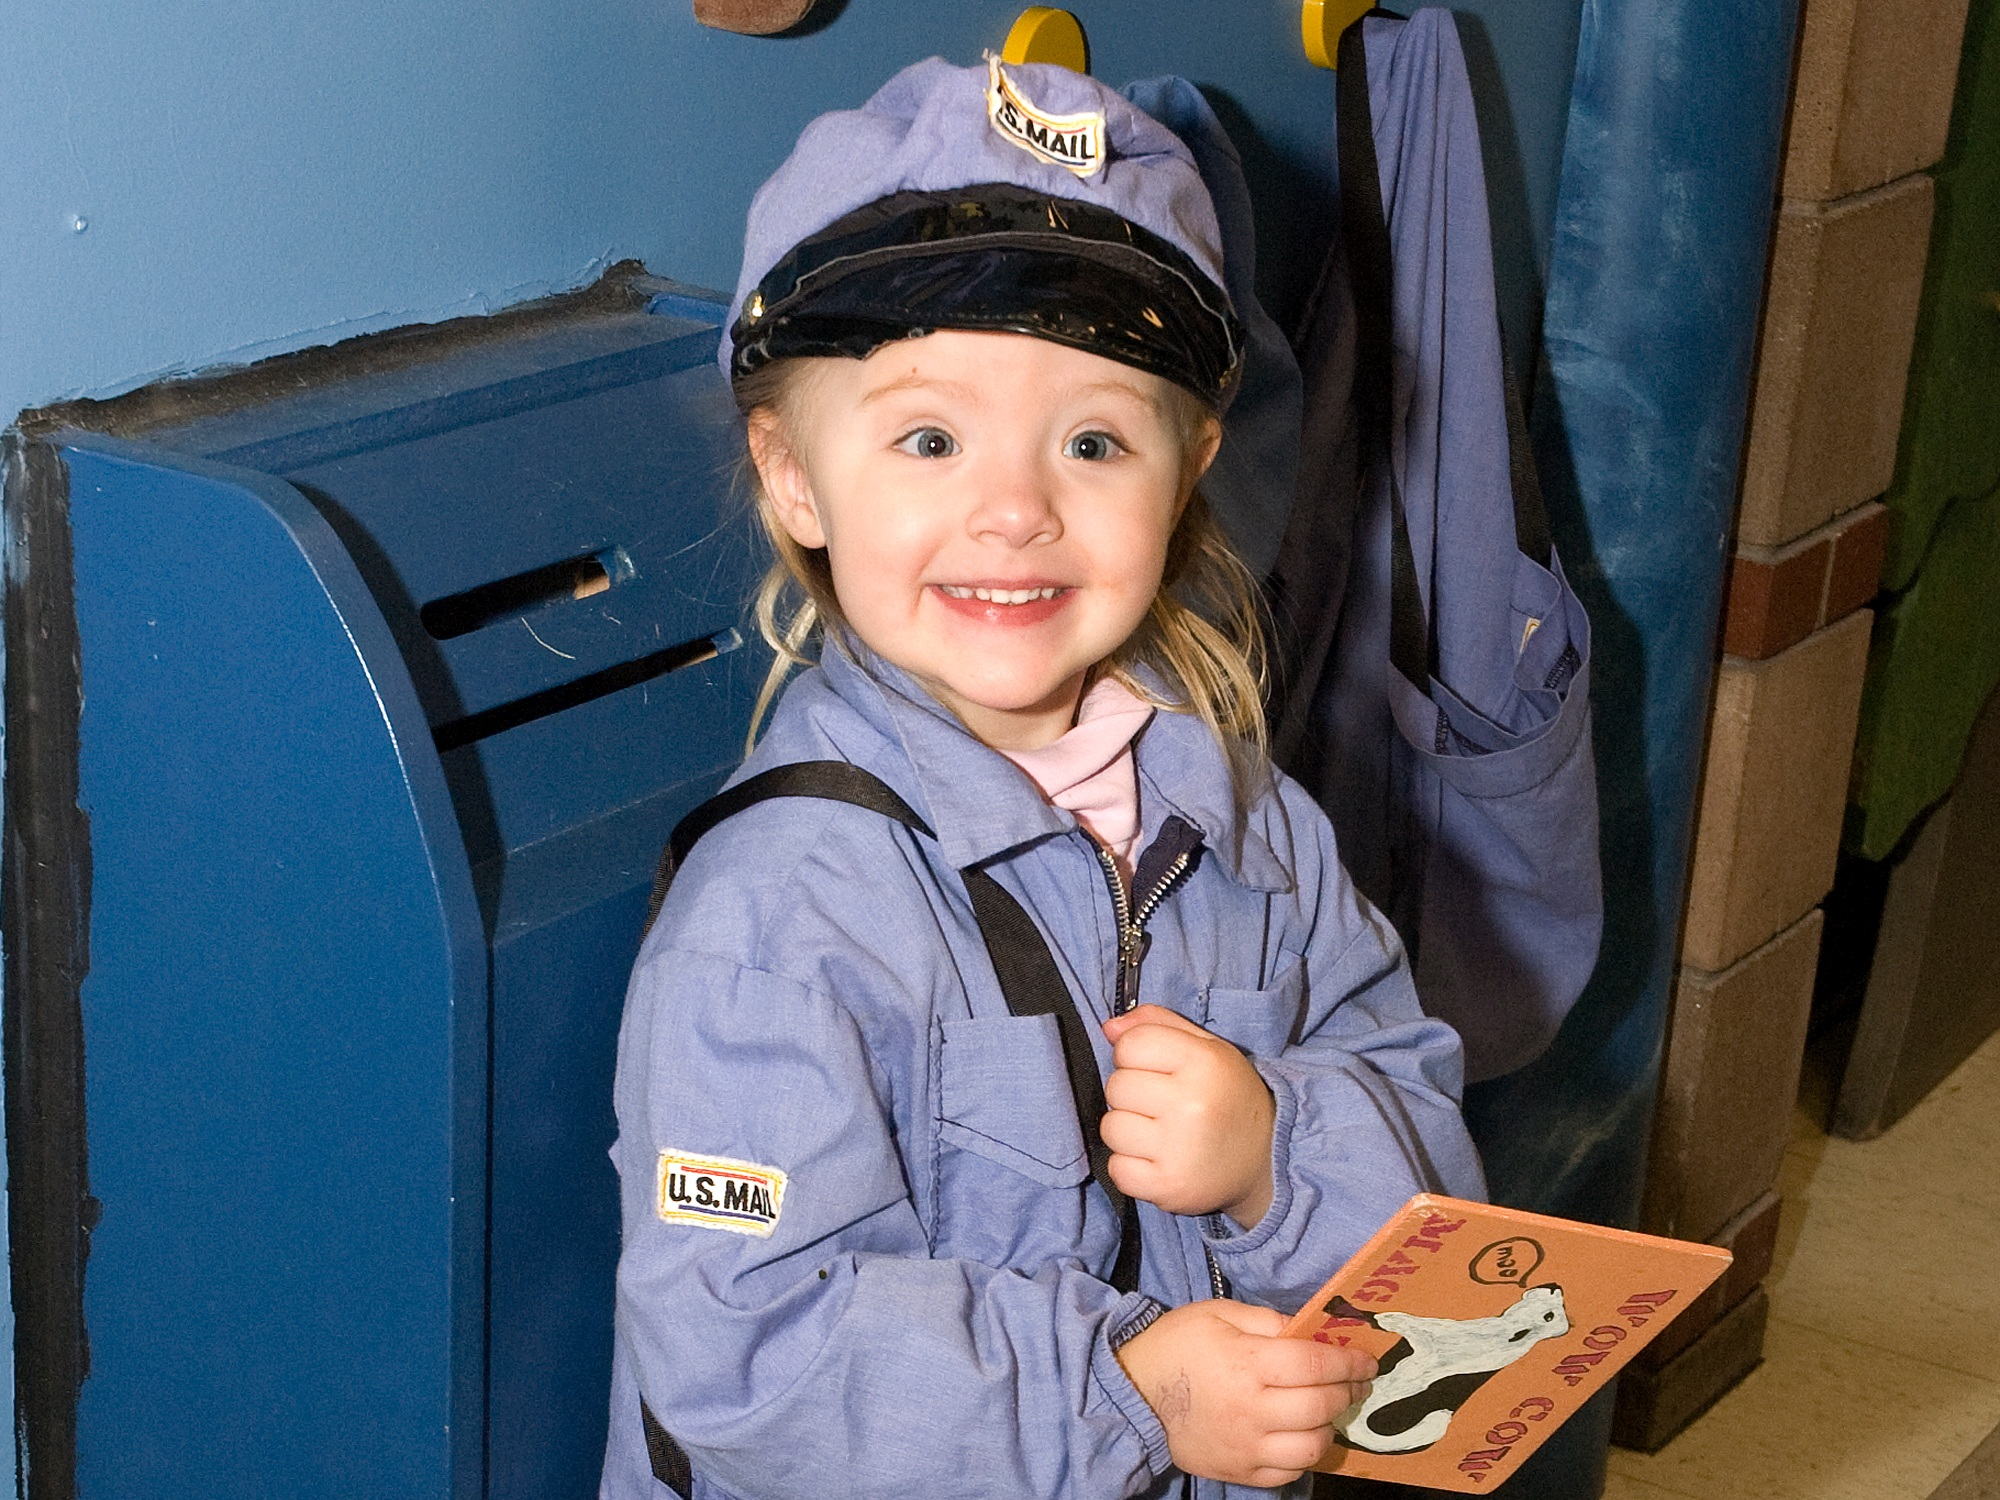 Child smiles in Post Office play uniform (Photo by Claudia Dricot).jpg